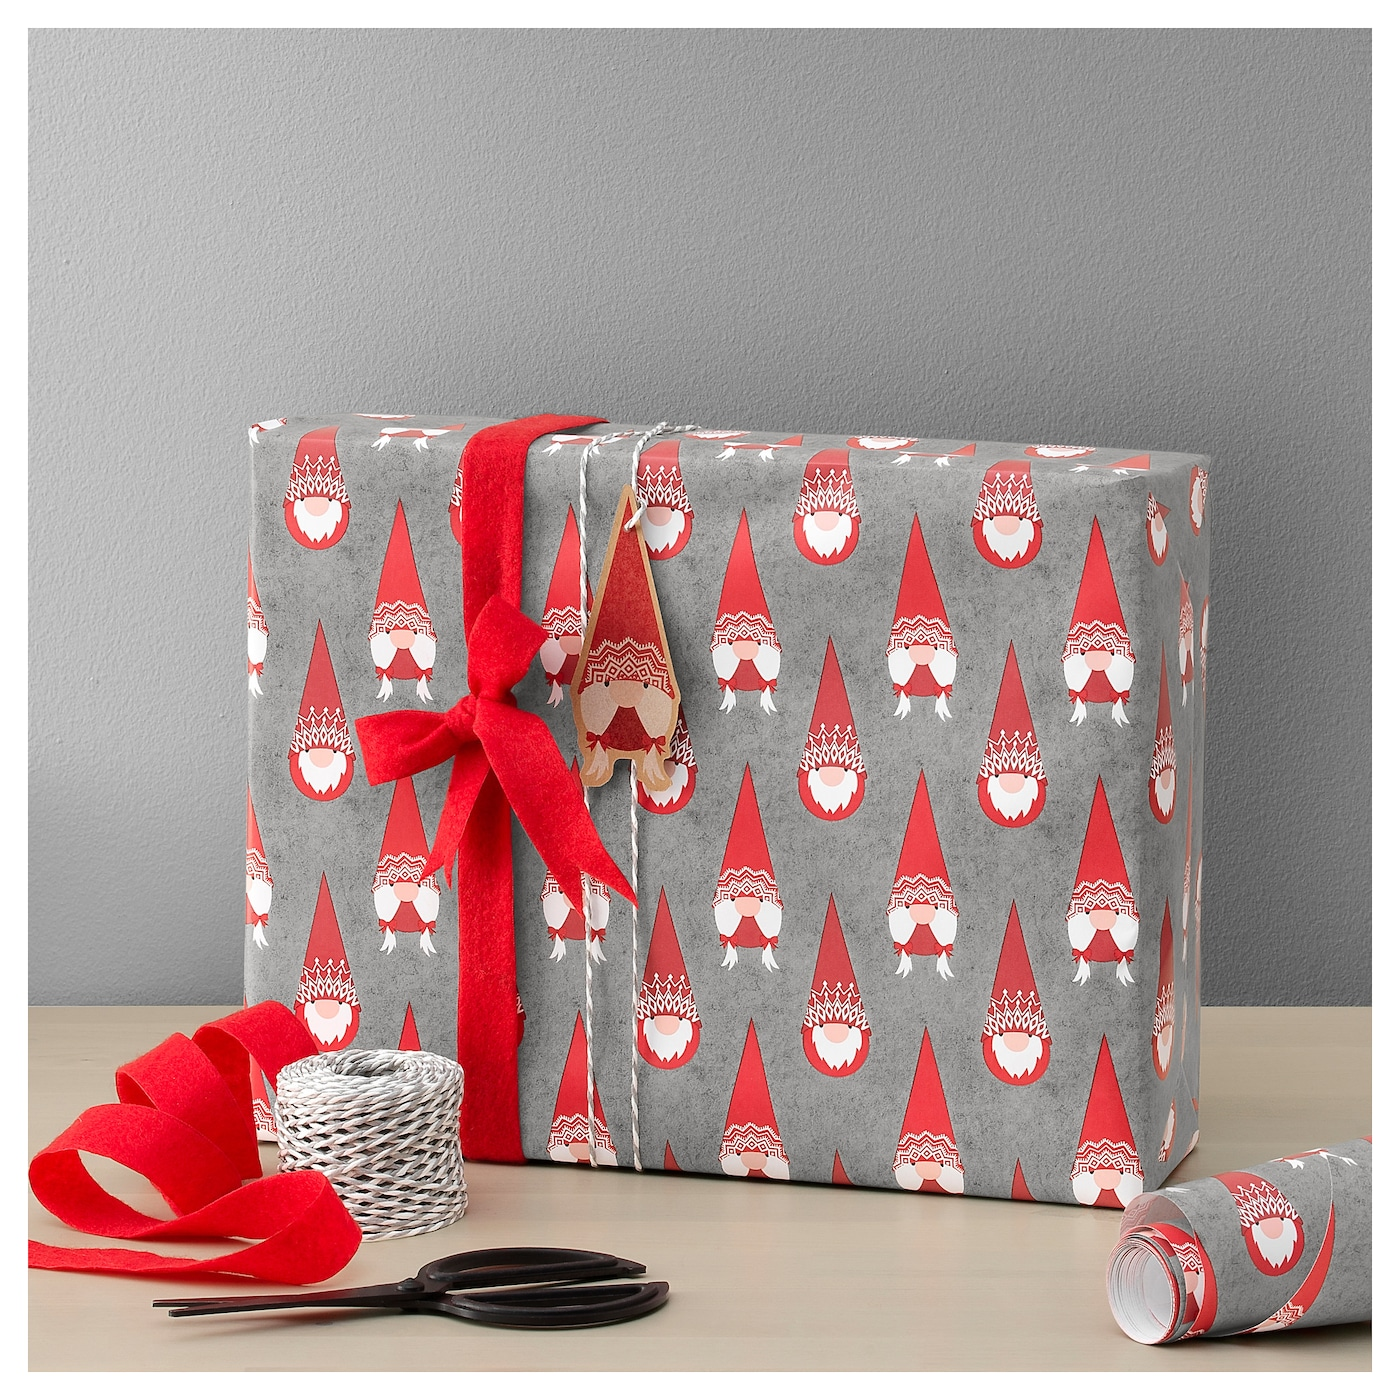 IKEA VINTER 2017 gift wrap roll